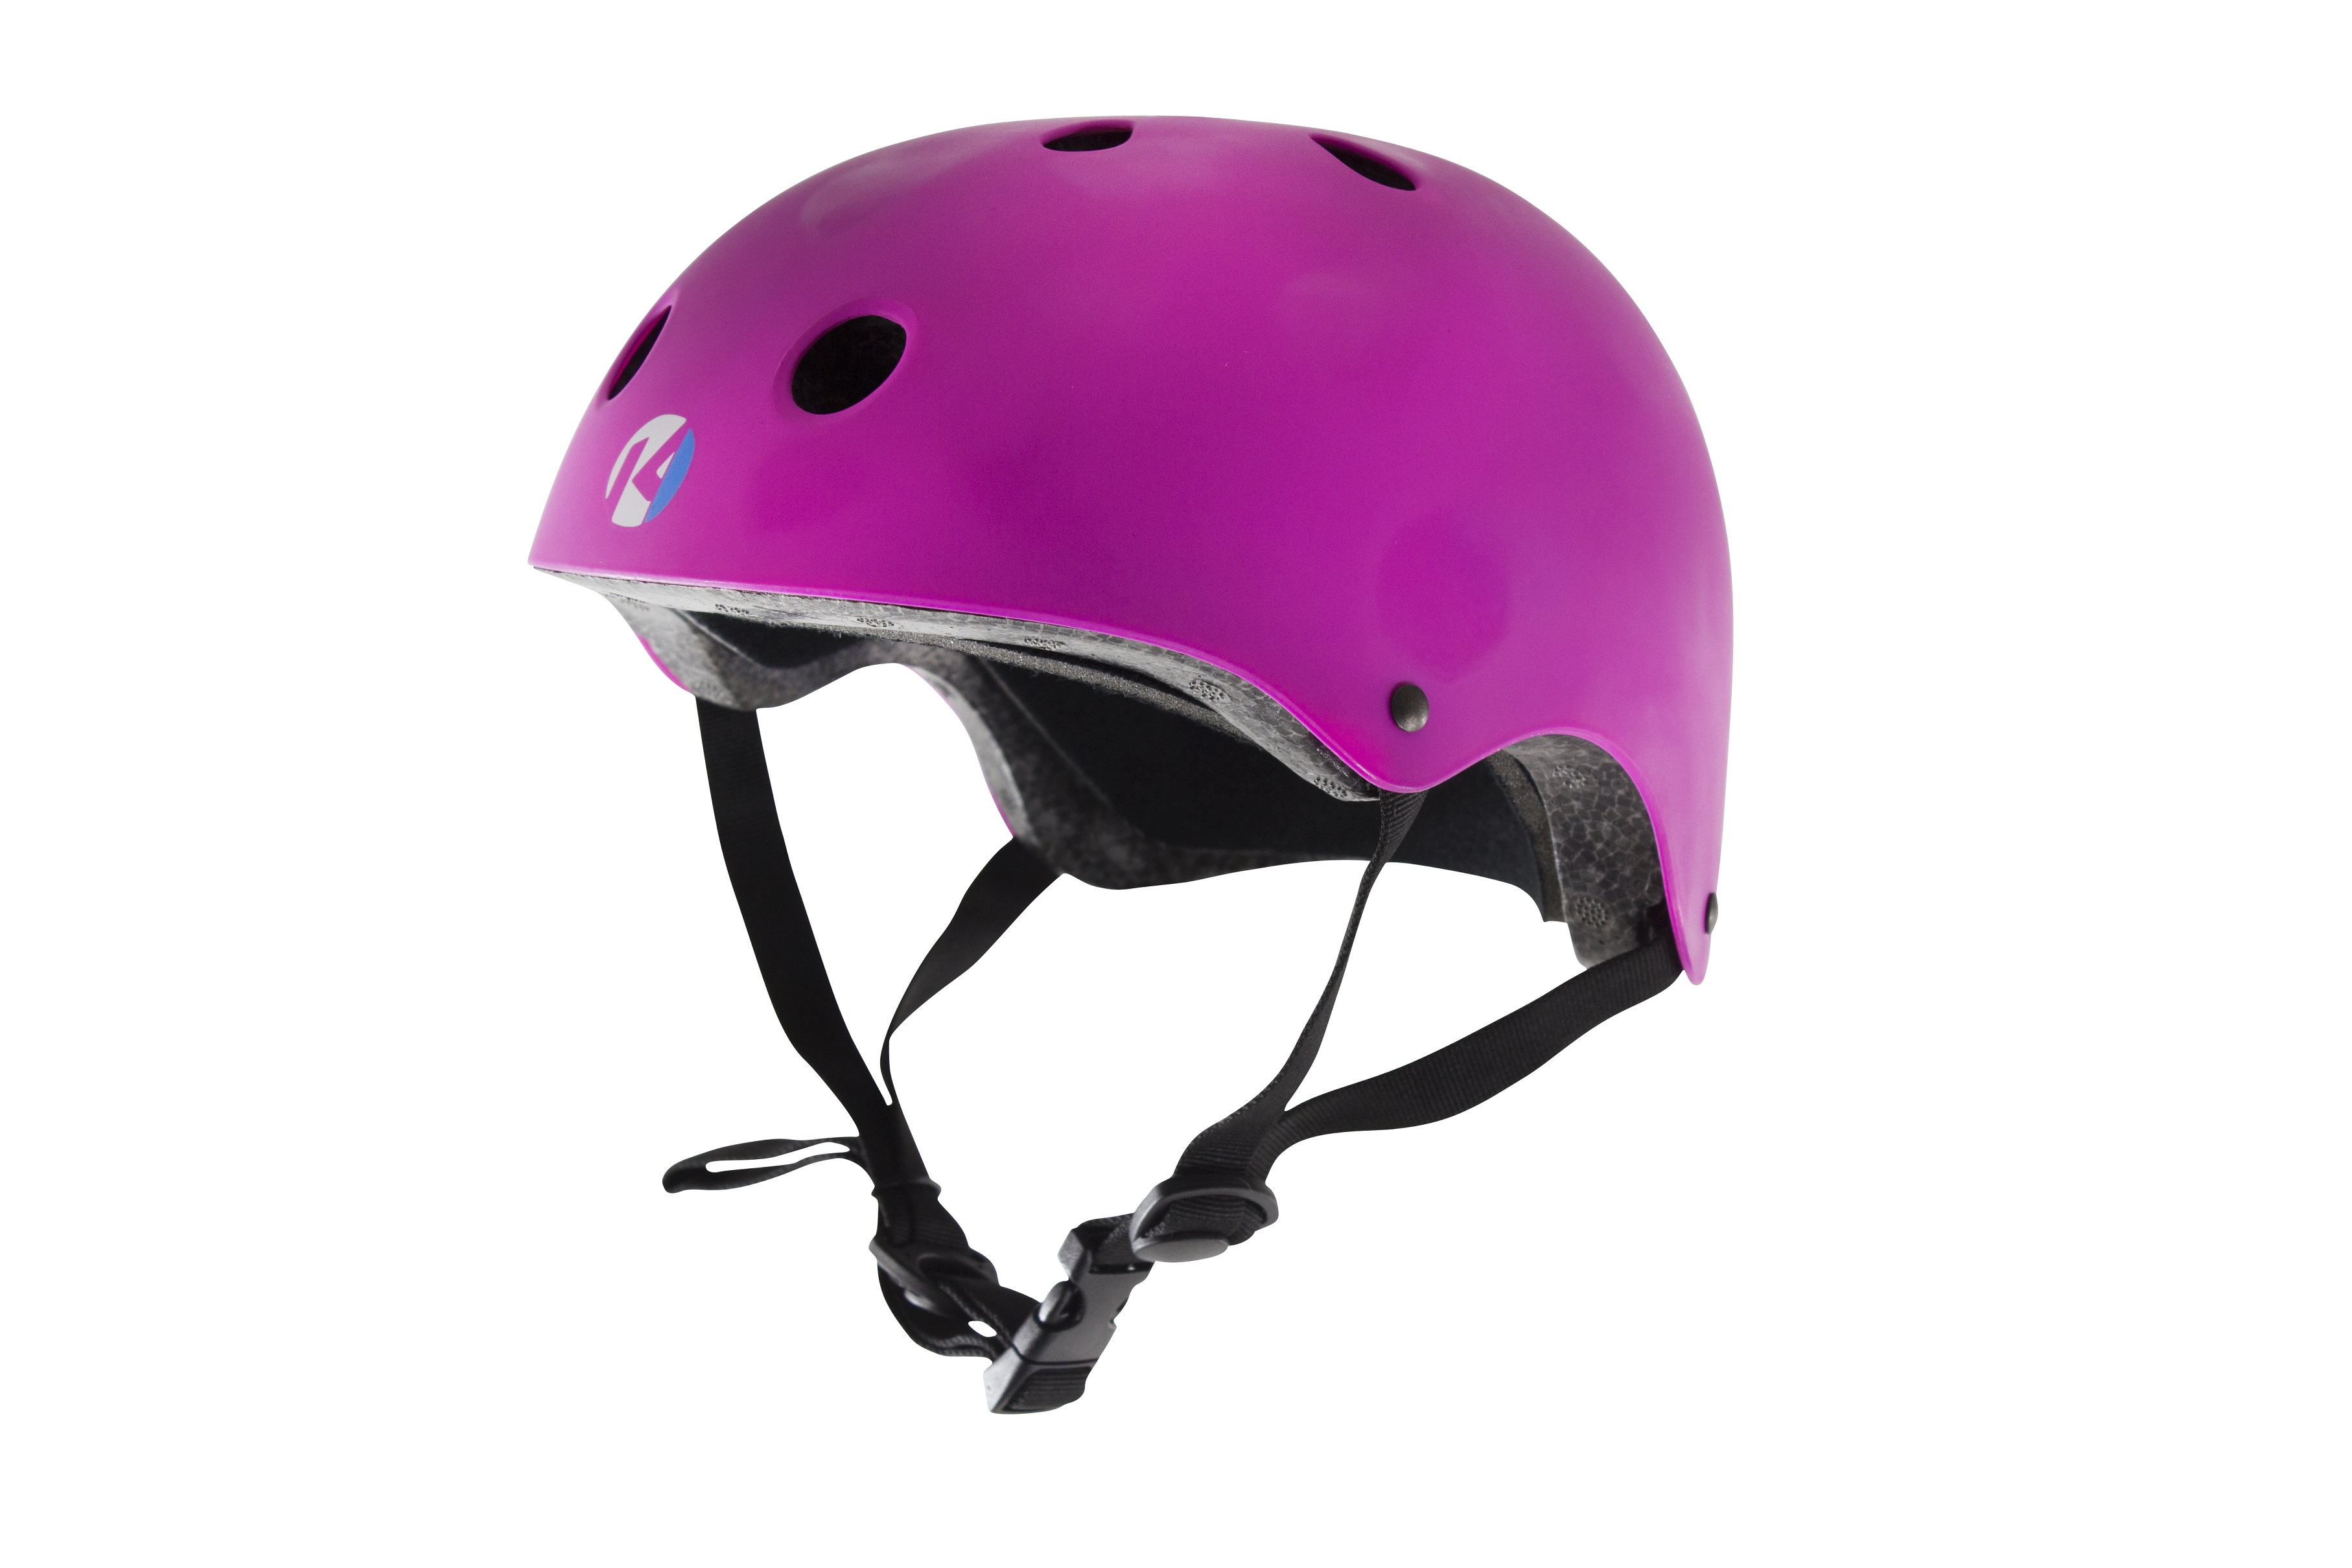 Kryptonics Kryptonics Starter Small/Medium Helmet - Pink PartNumber: 00687718000P KsnValue: 7782317 MfgPartNumber: 160471